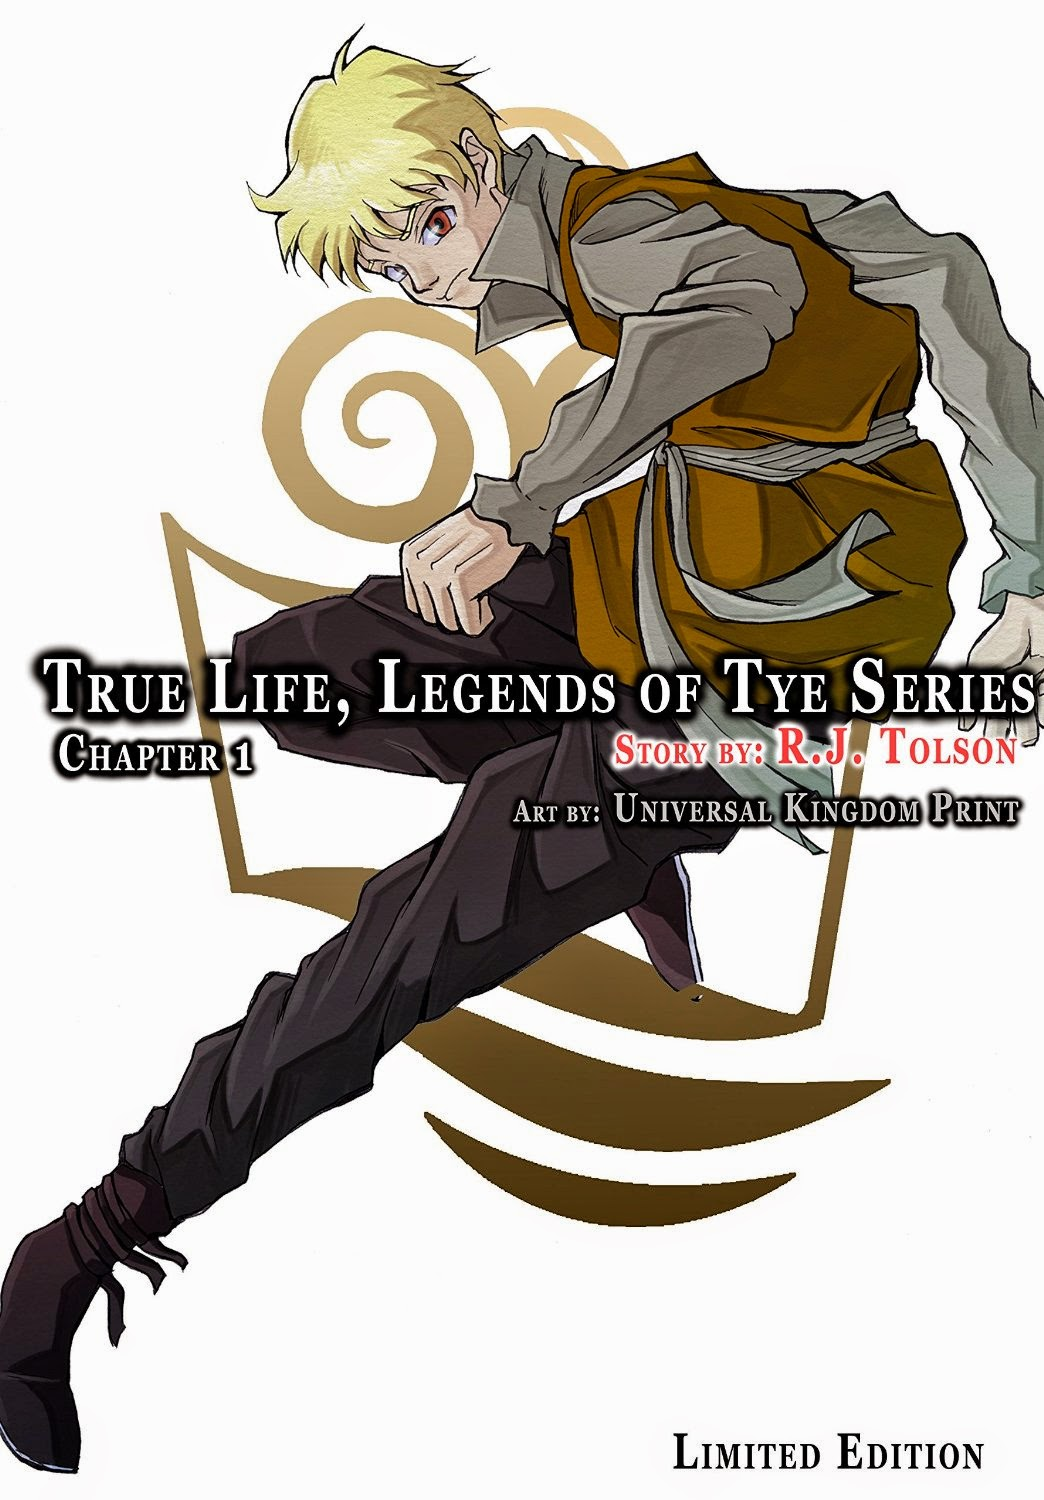 Tome Tender: R.J. Tolson's True Life (Legends Of Tye